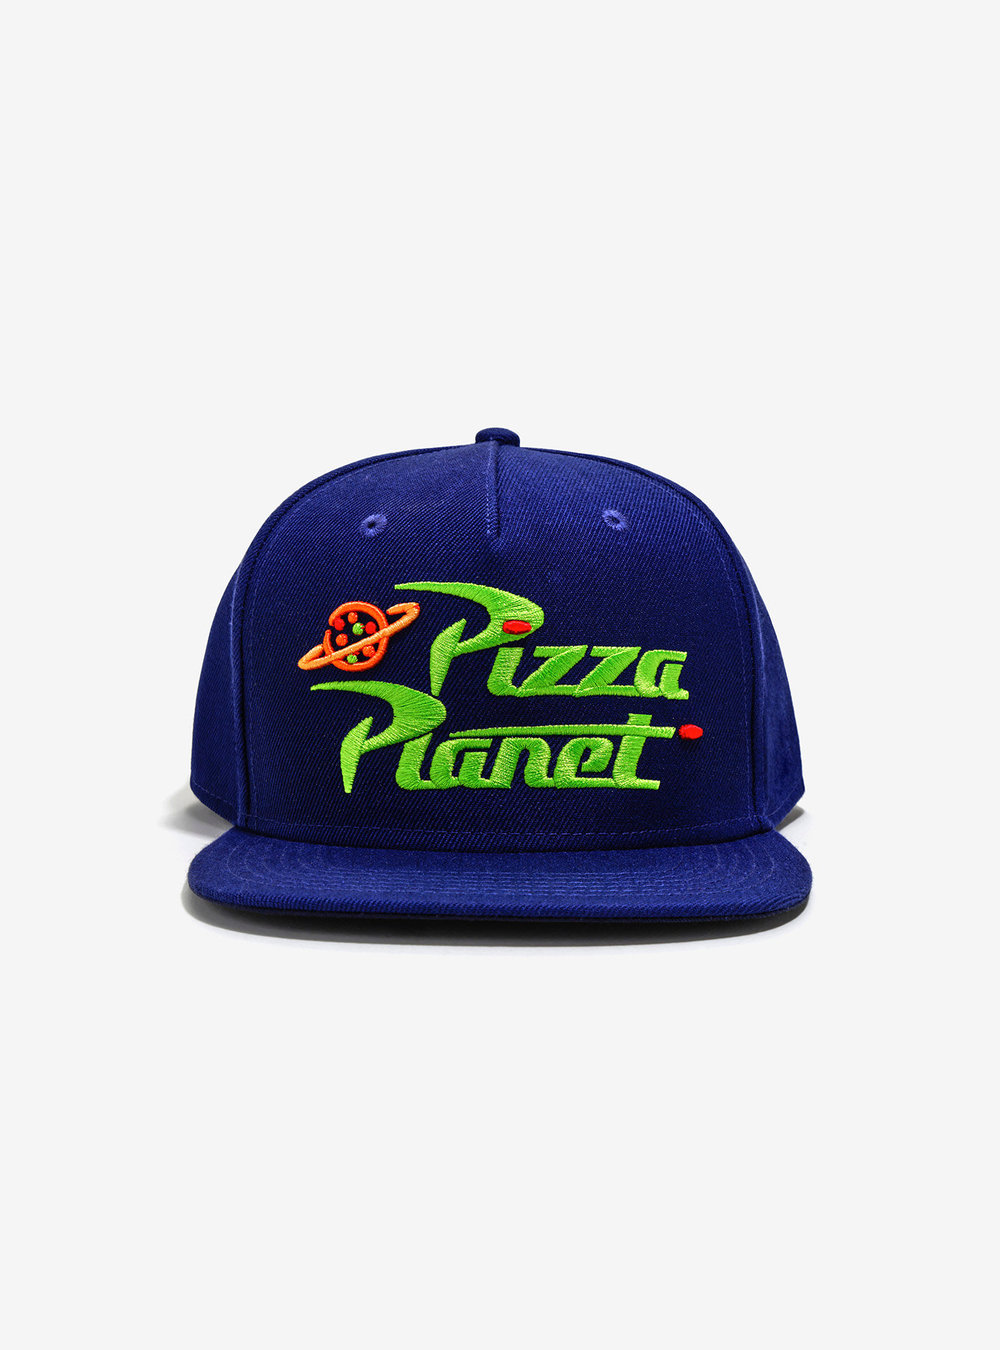 pizza planet hat.jpg